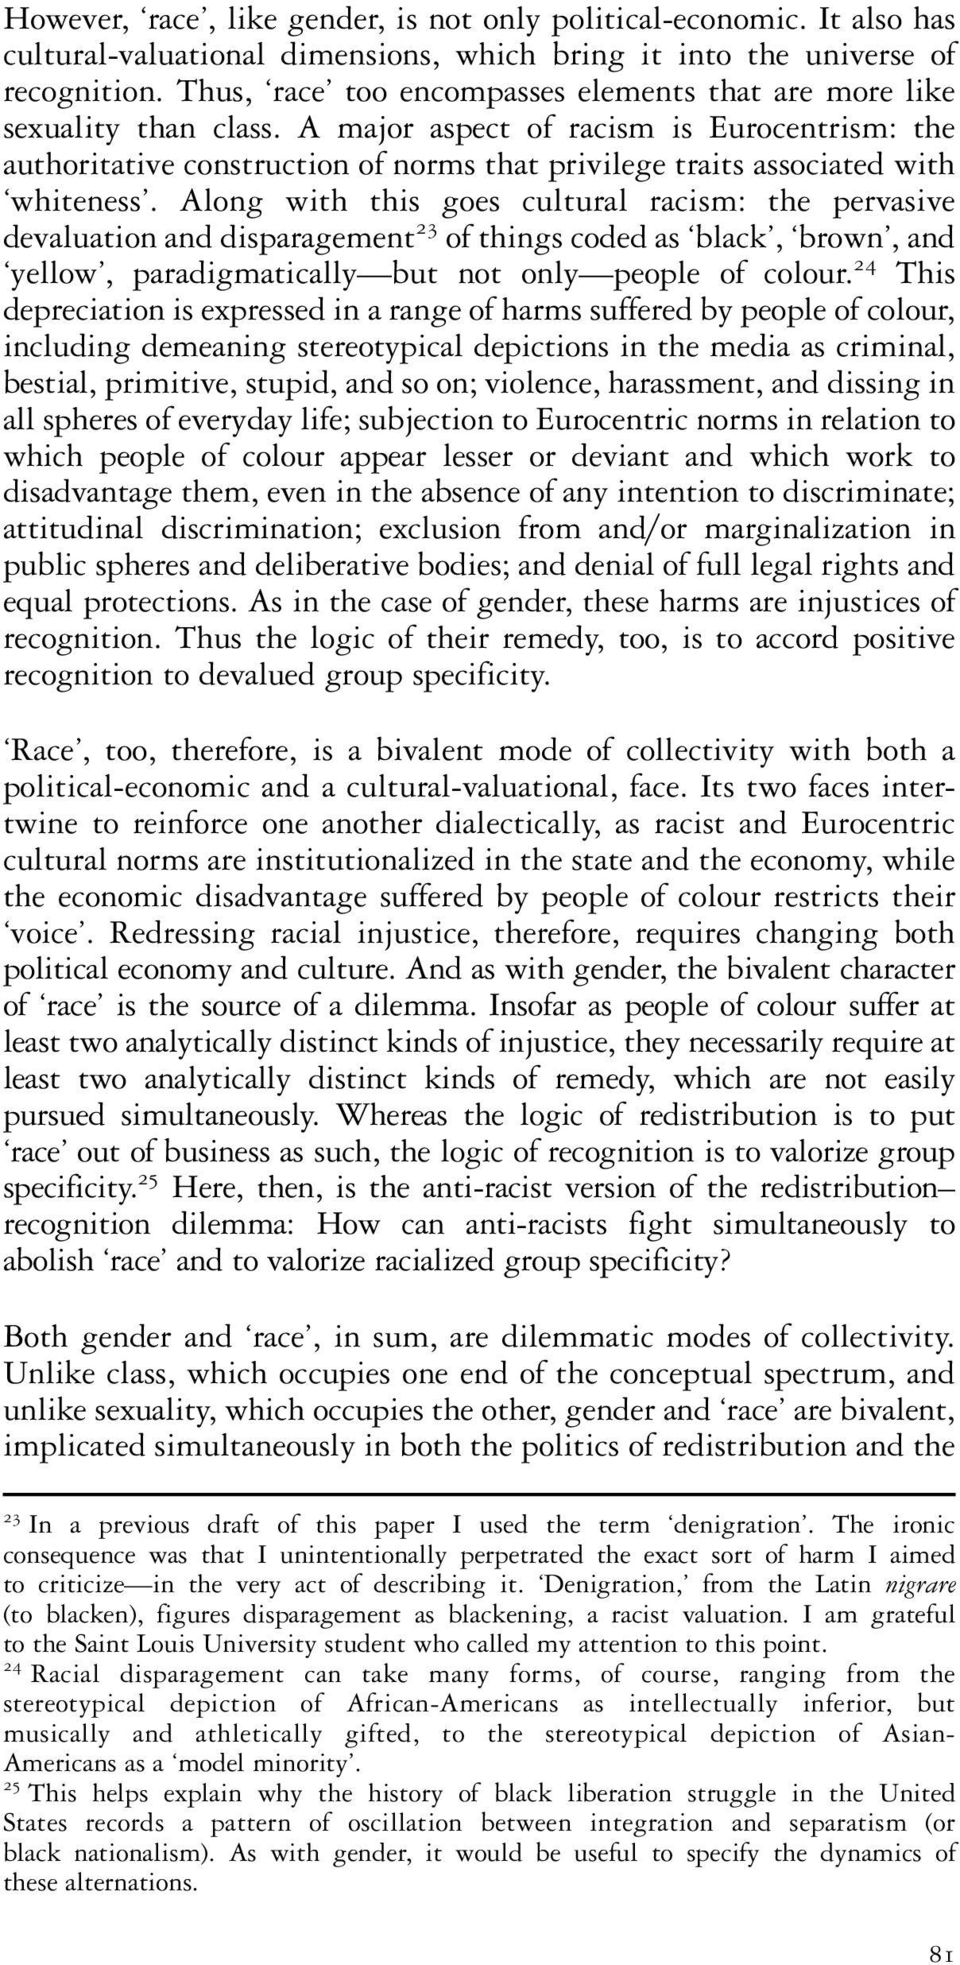 A major aspect of racism is Eurocentrism: the authoritative construction of norms that privilege traits associated with whiteness.